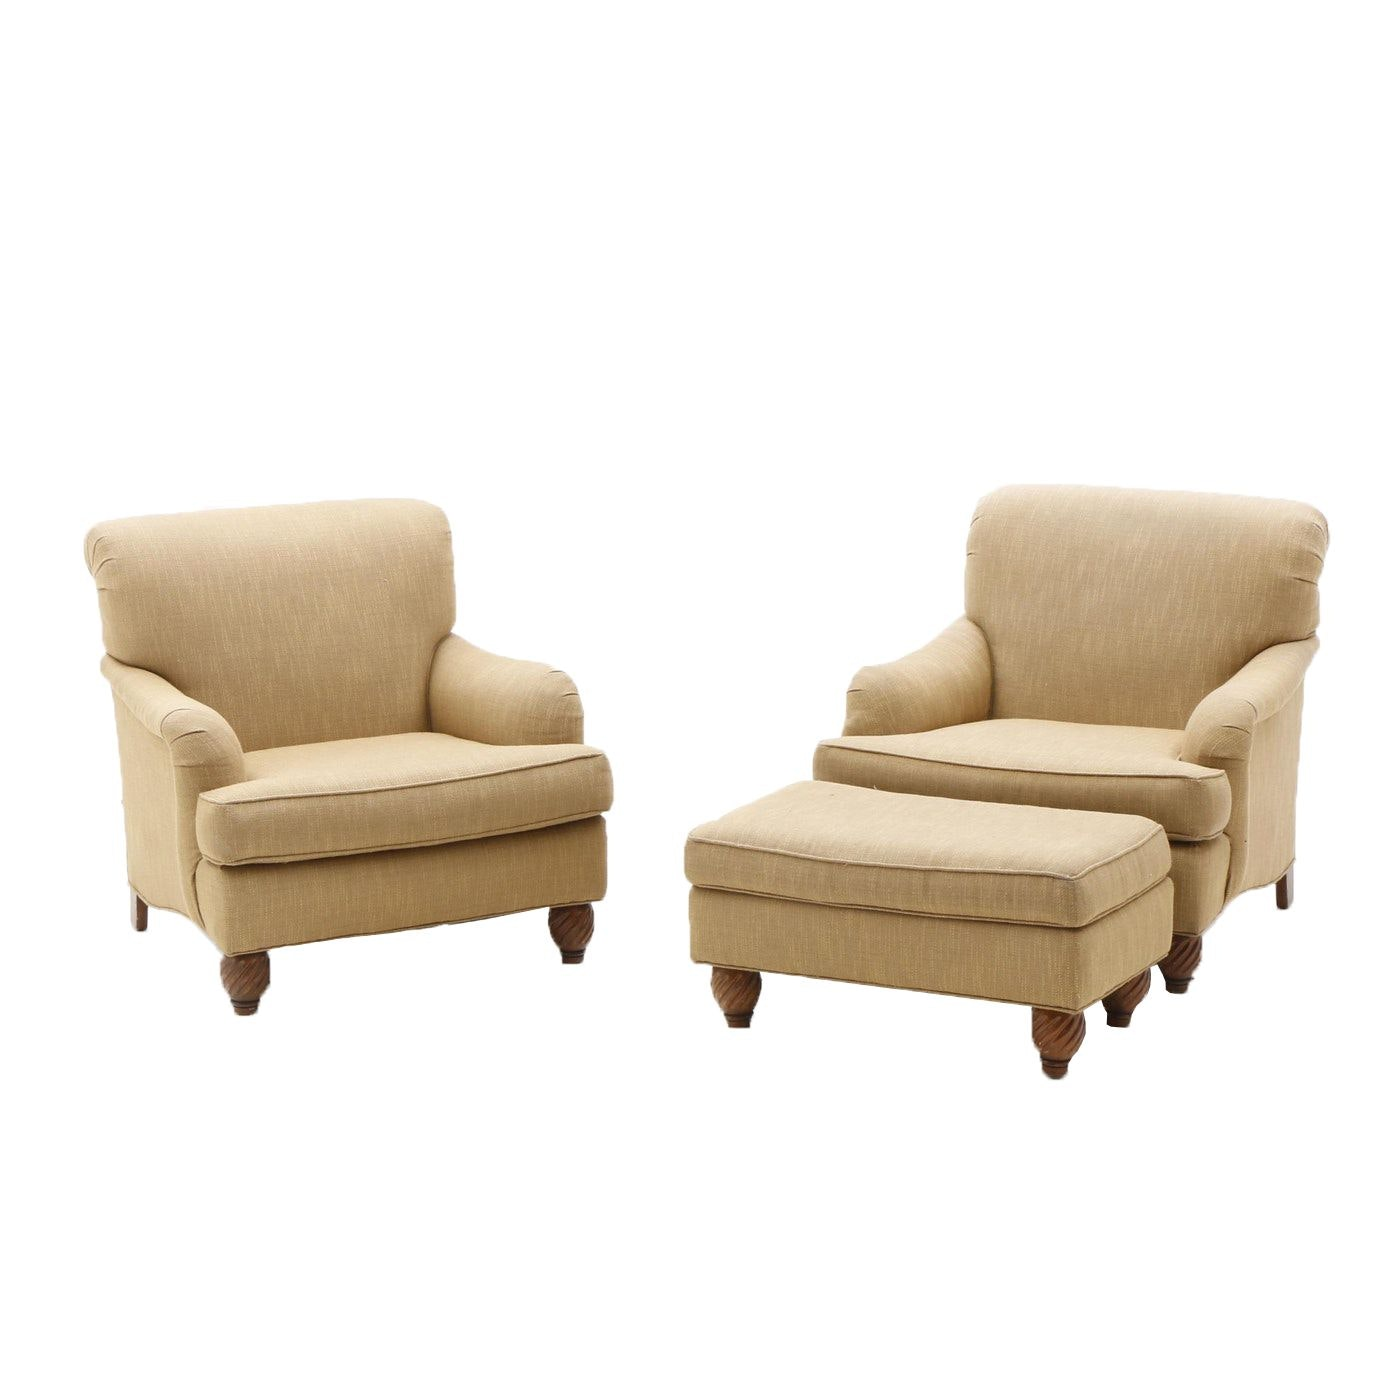 Tommy Bahama Chairs and Ottoman by Lexington